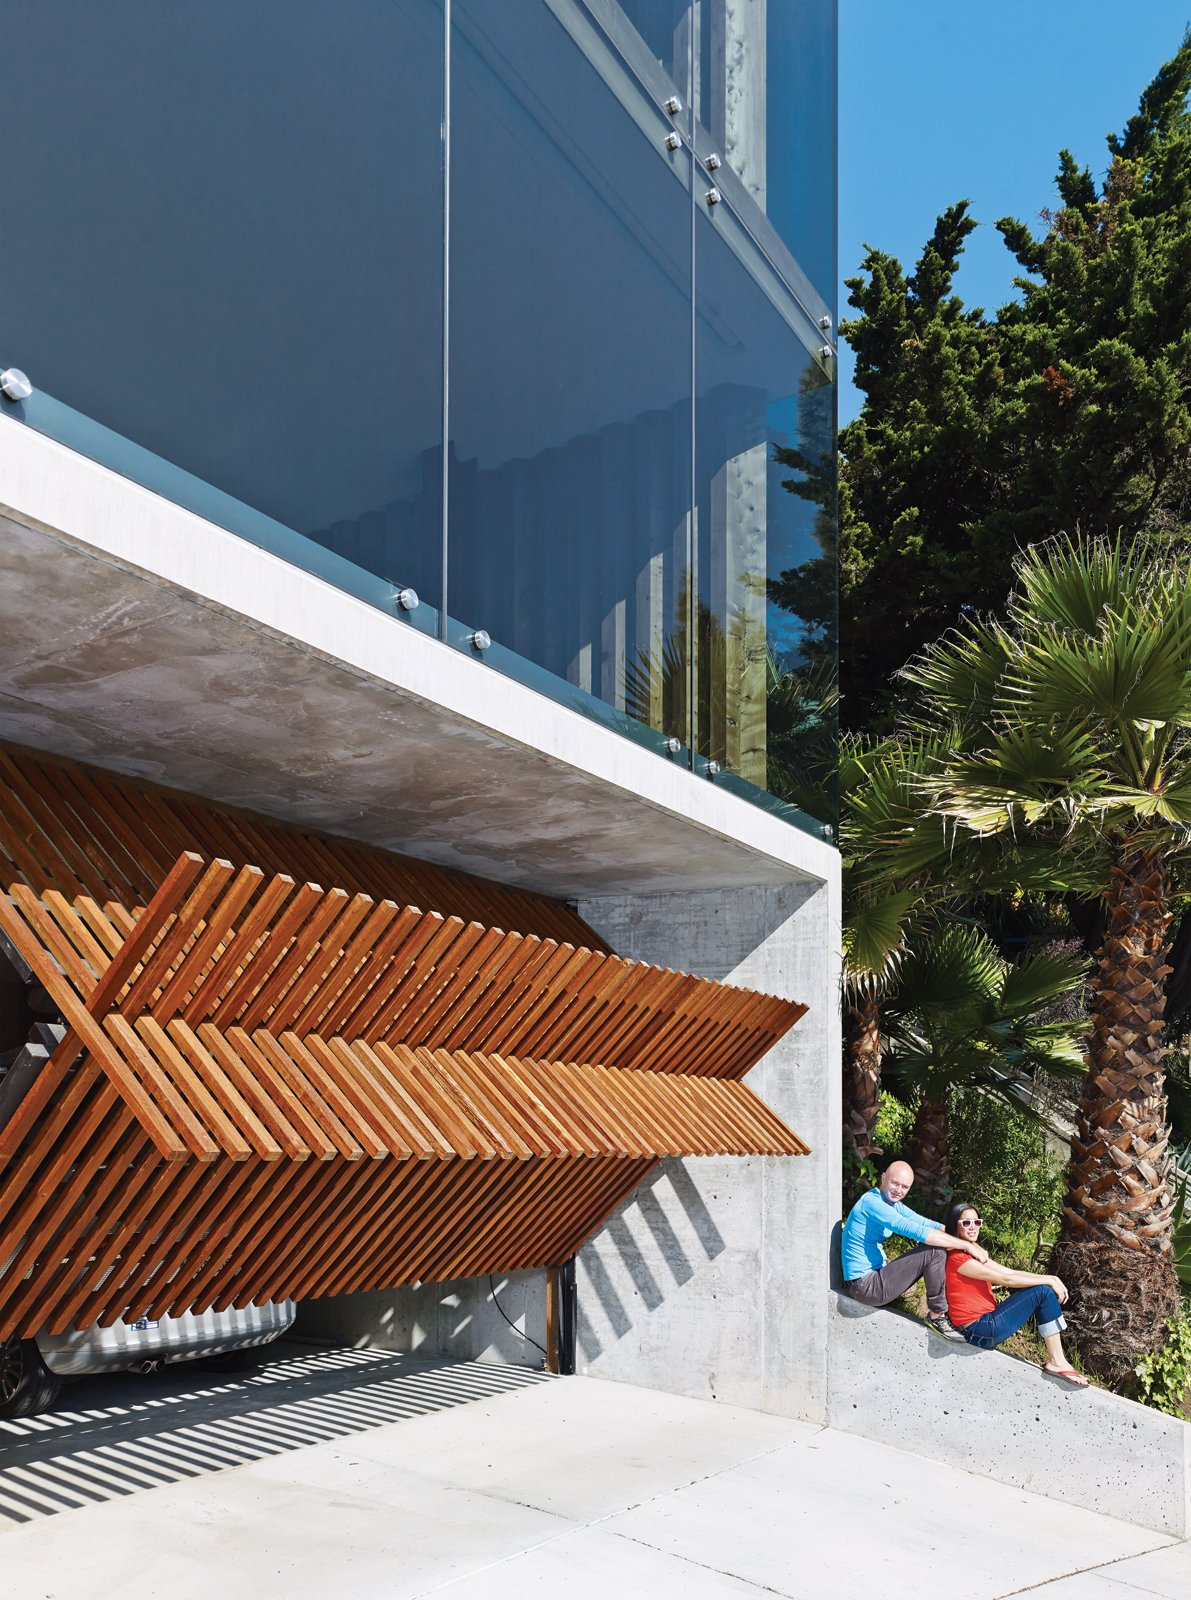 Garage and Attached Garage Room Type At street level, the wooden garage door opens its toothed maw.  Garage from Striking Slatted Wood and Glass Home in San Francisco